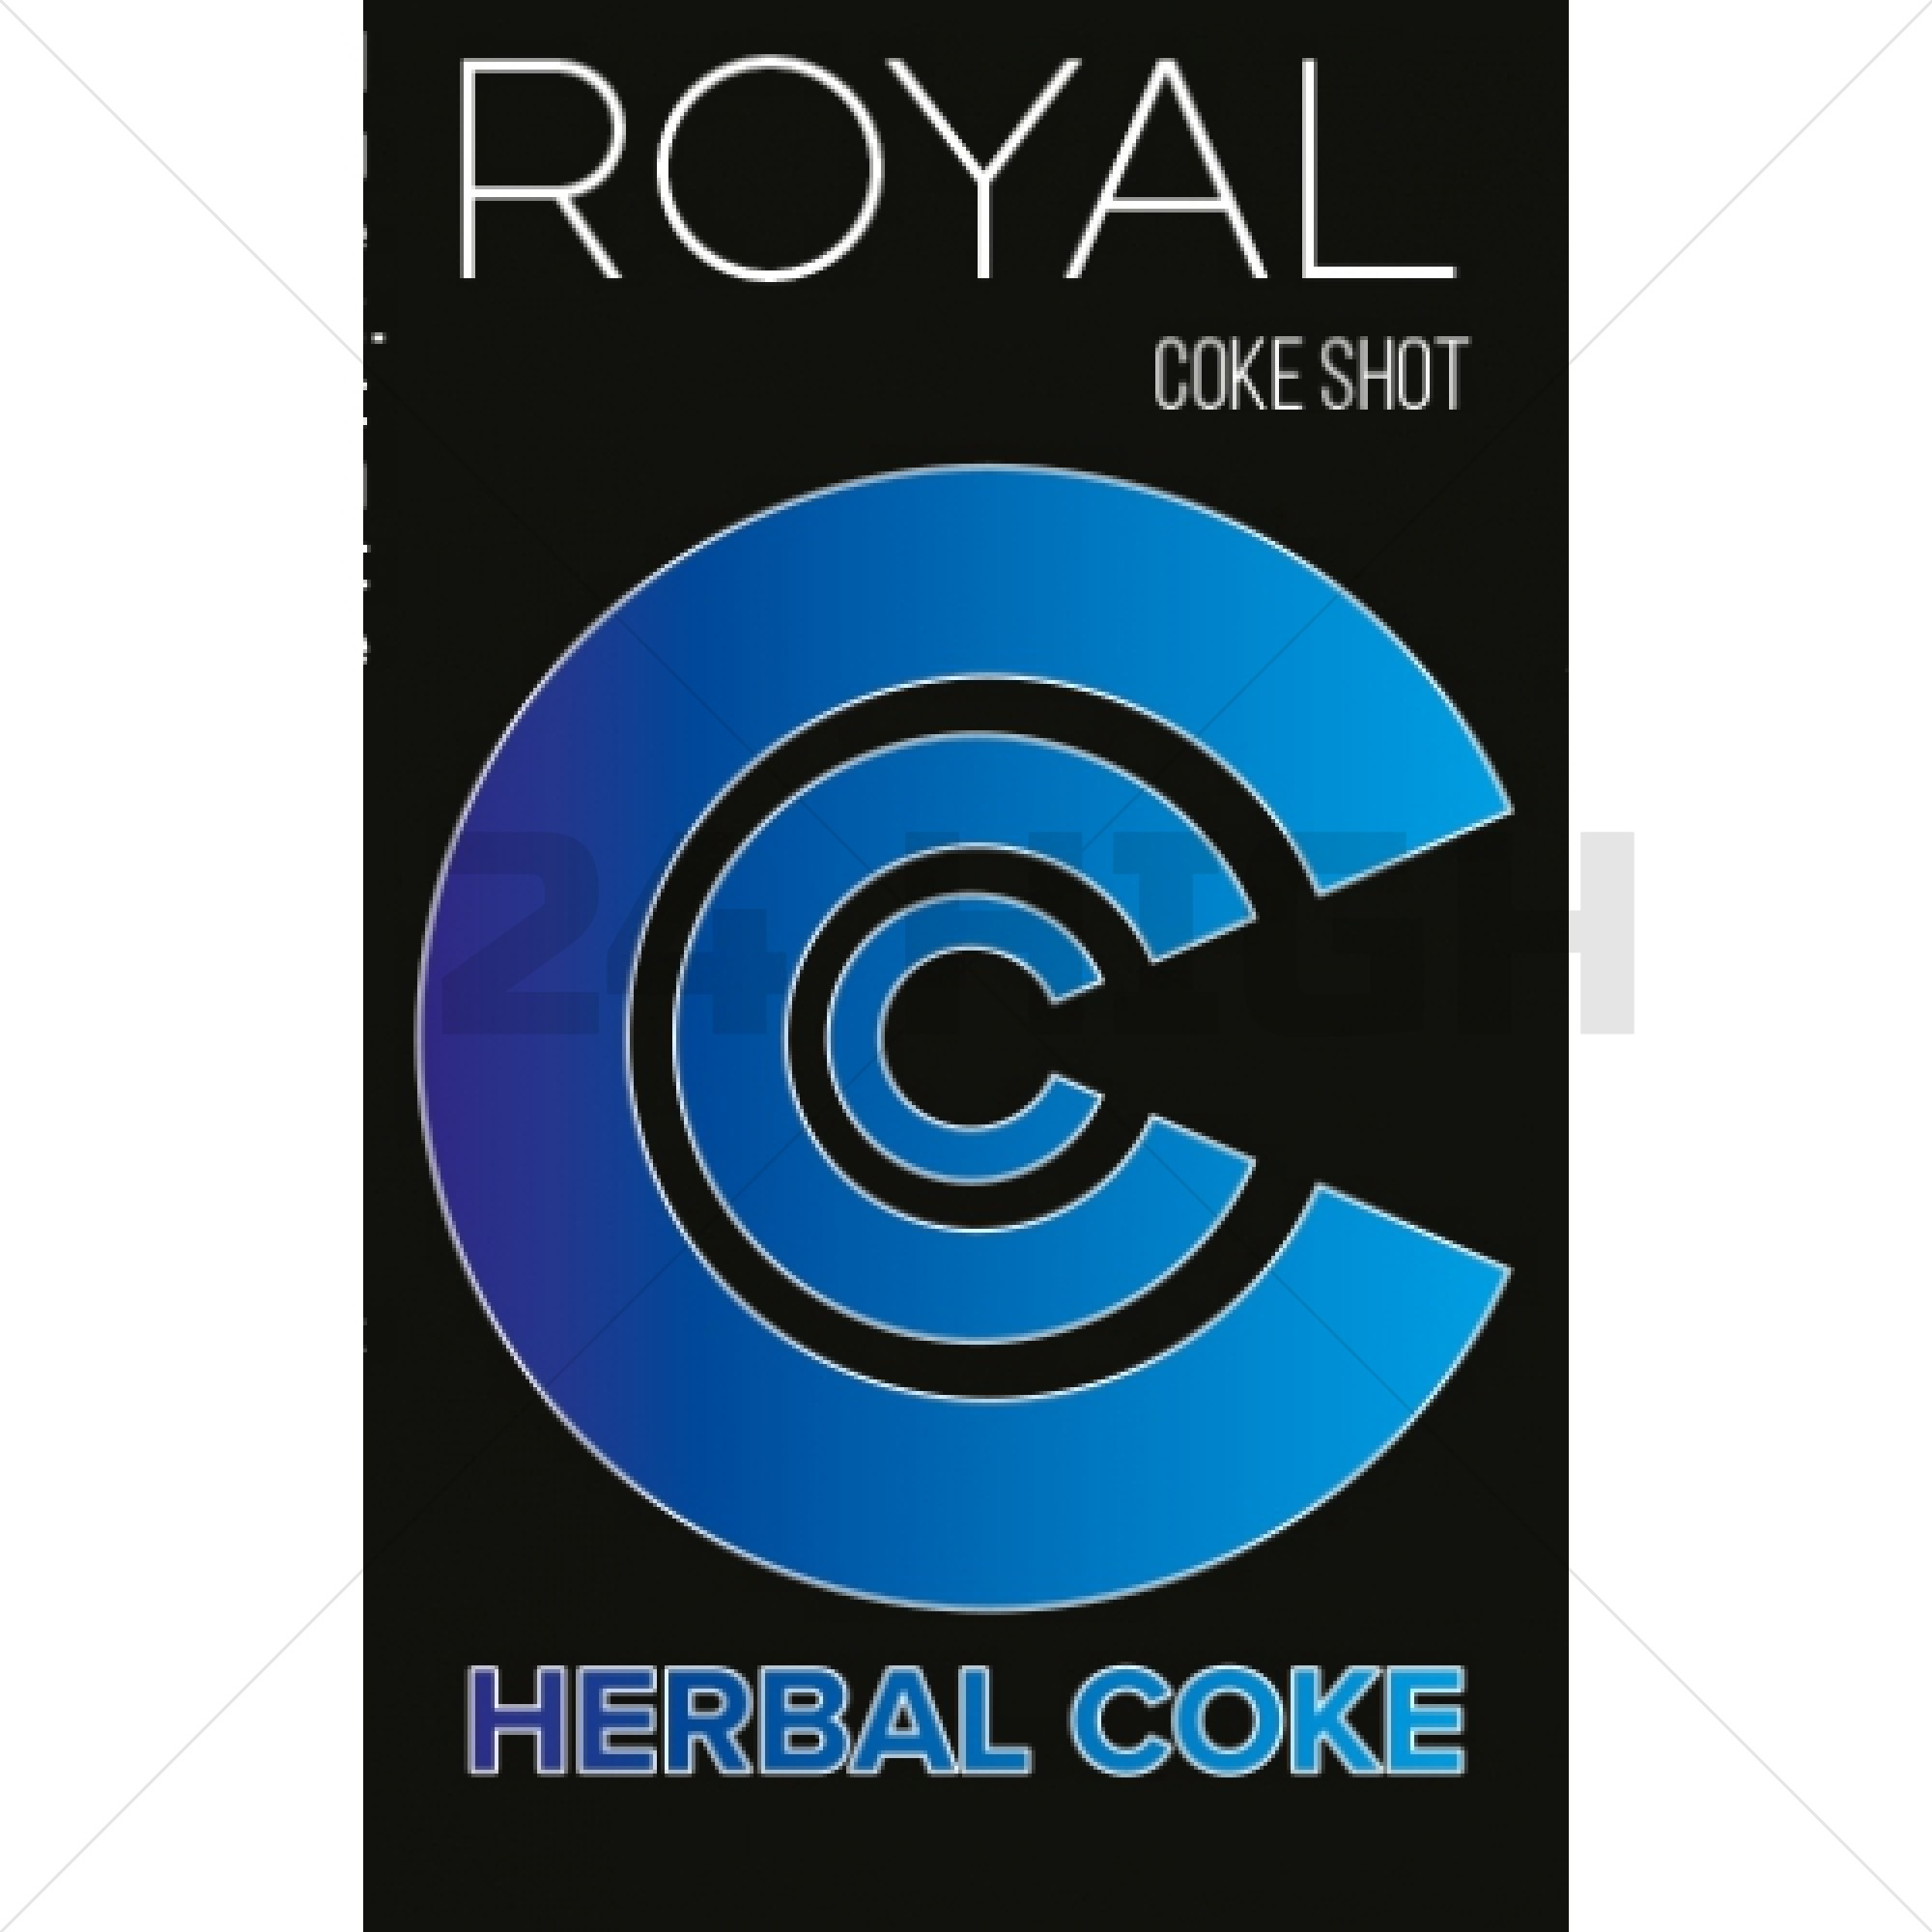 Royal Coke